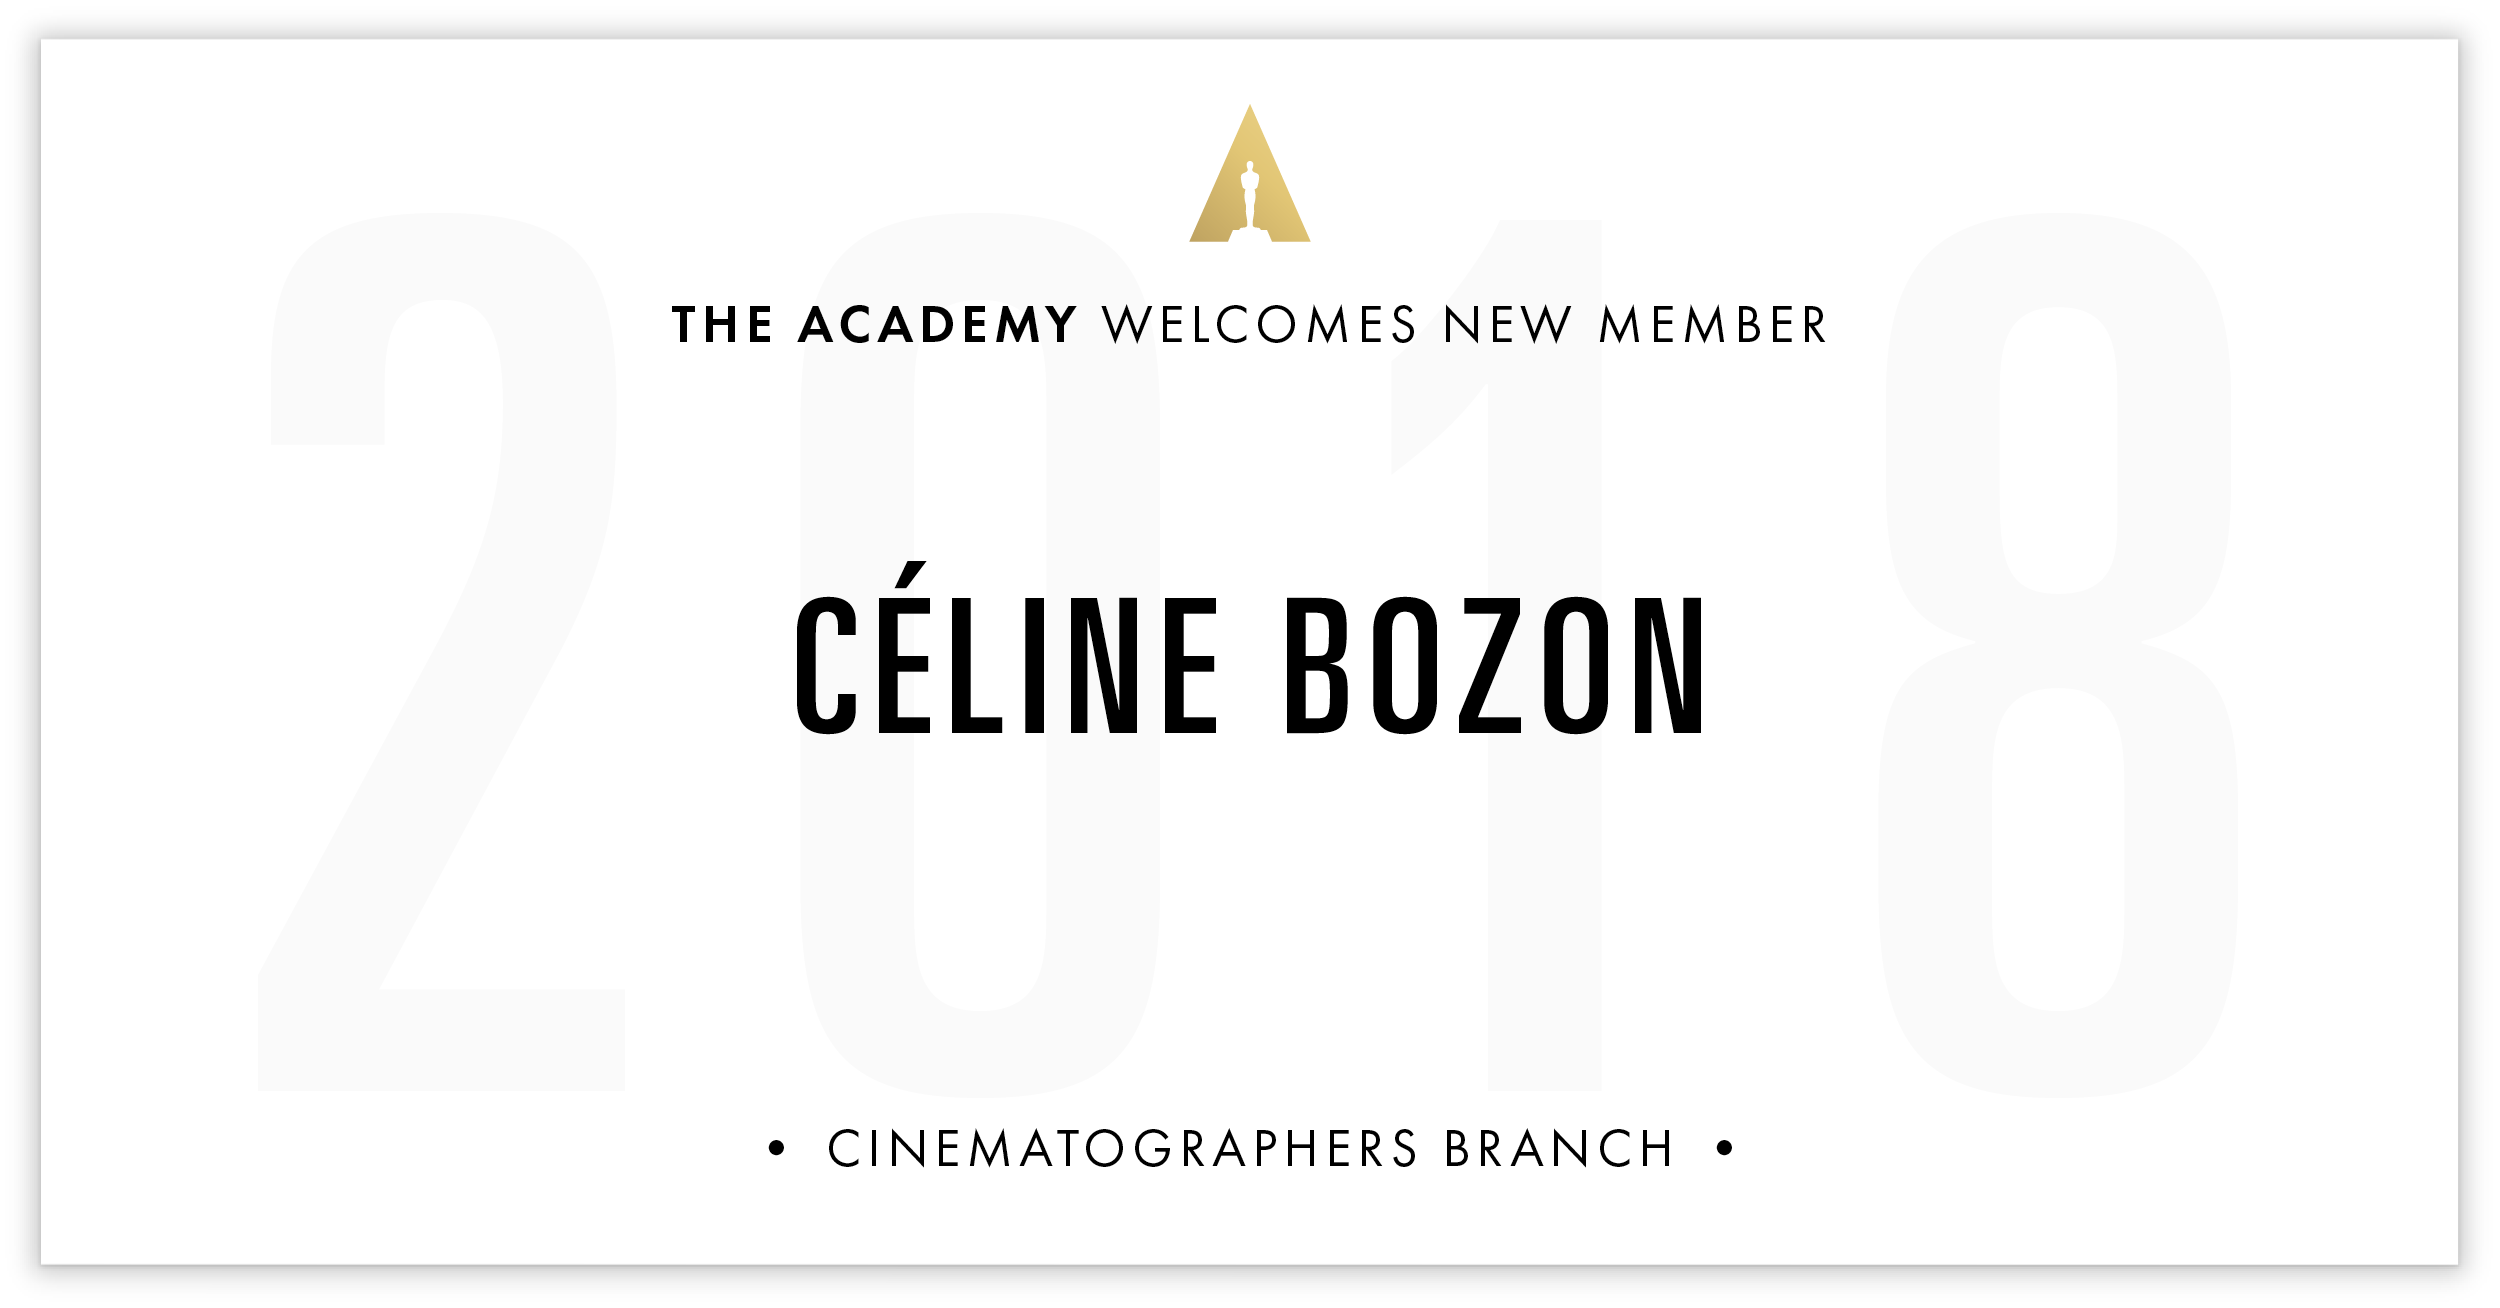 Céline Bozon is invited!